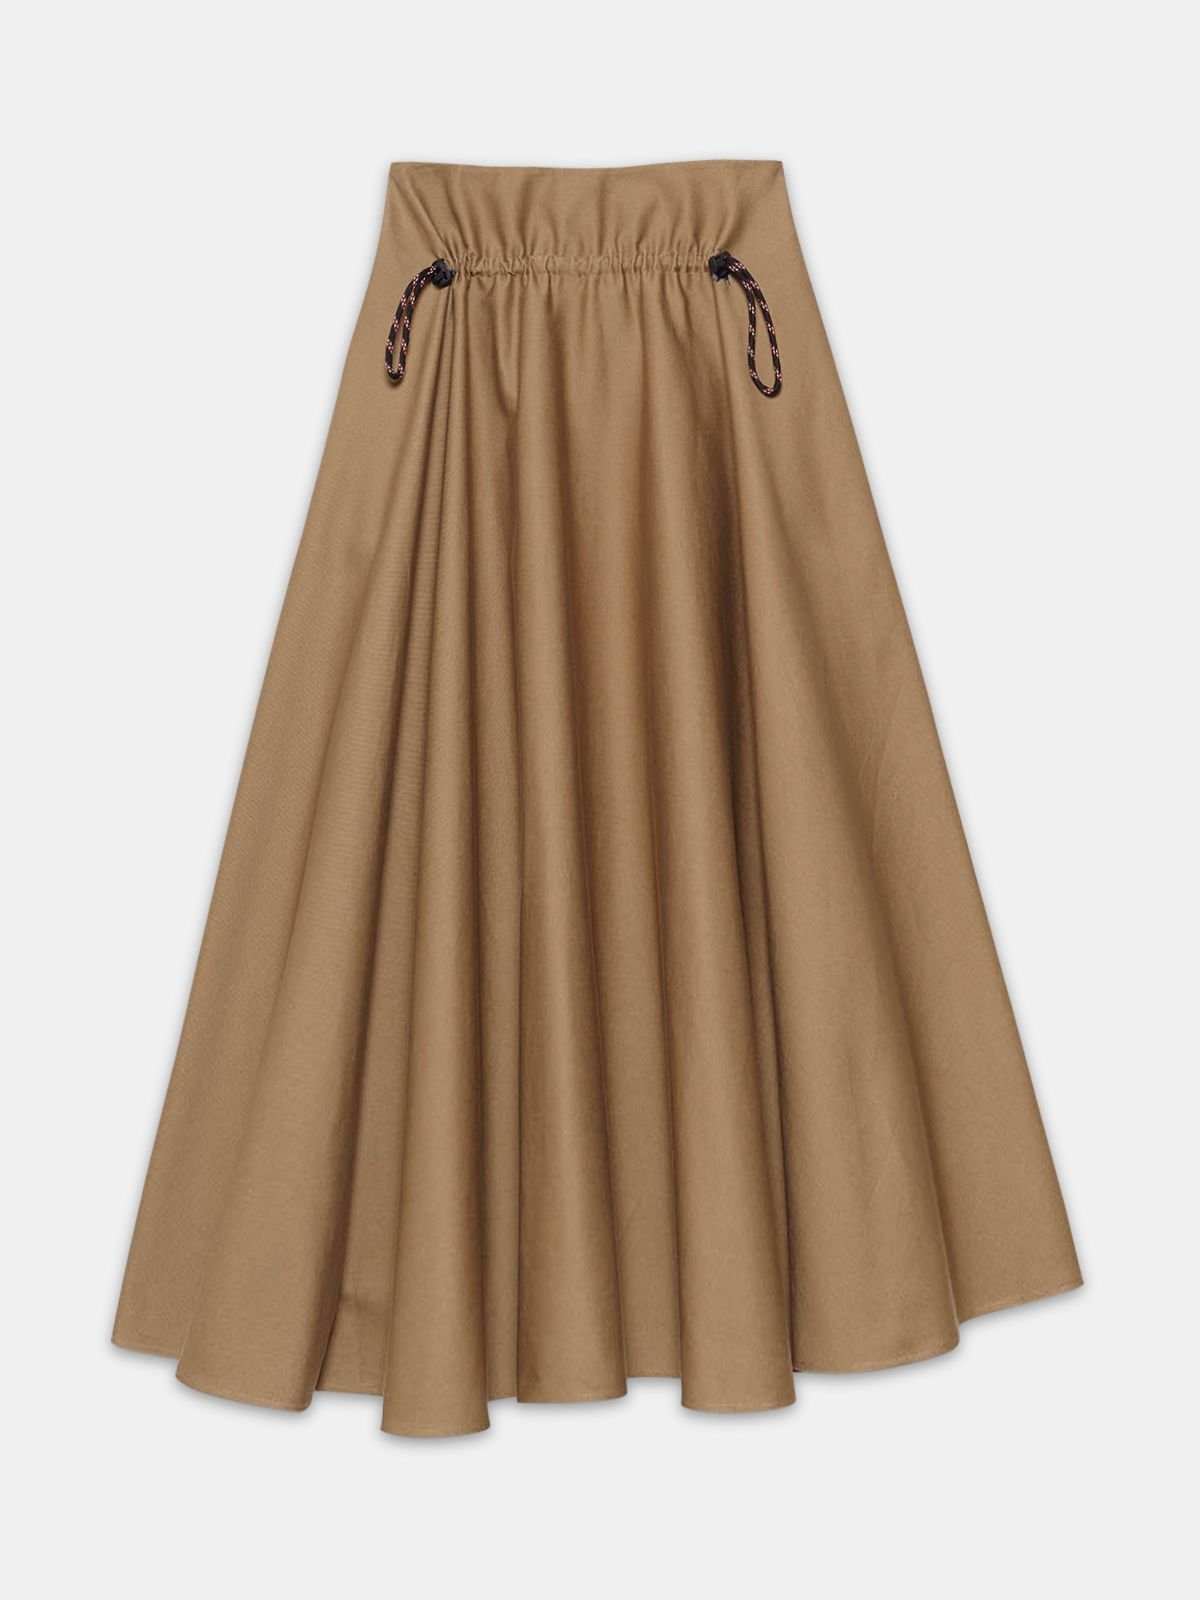 Golden Goose - Ayame skirt in taupe cotton in